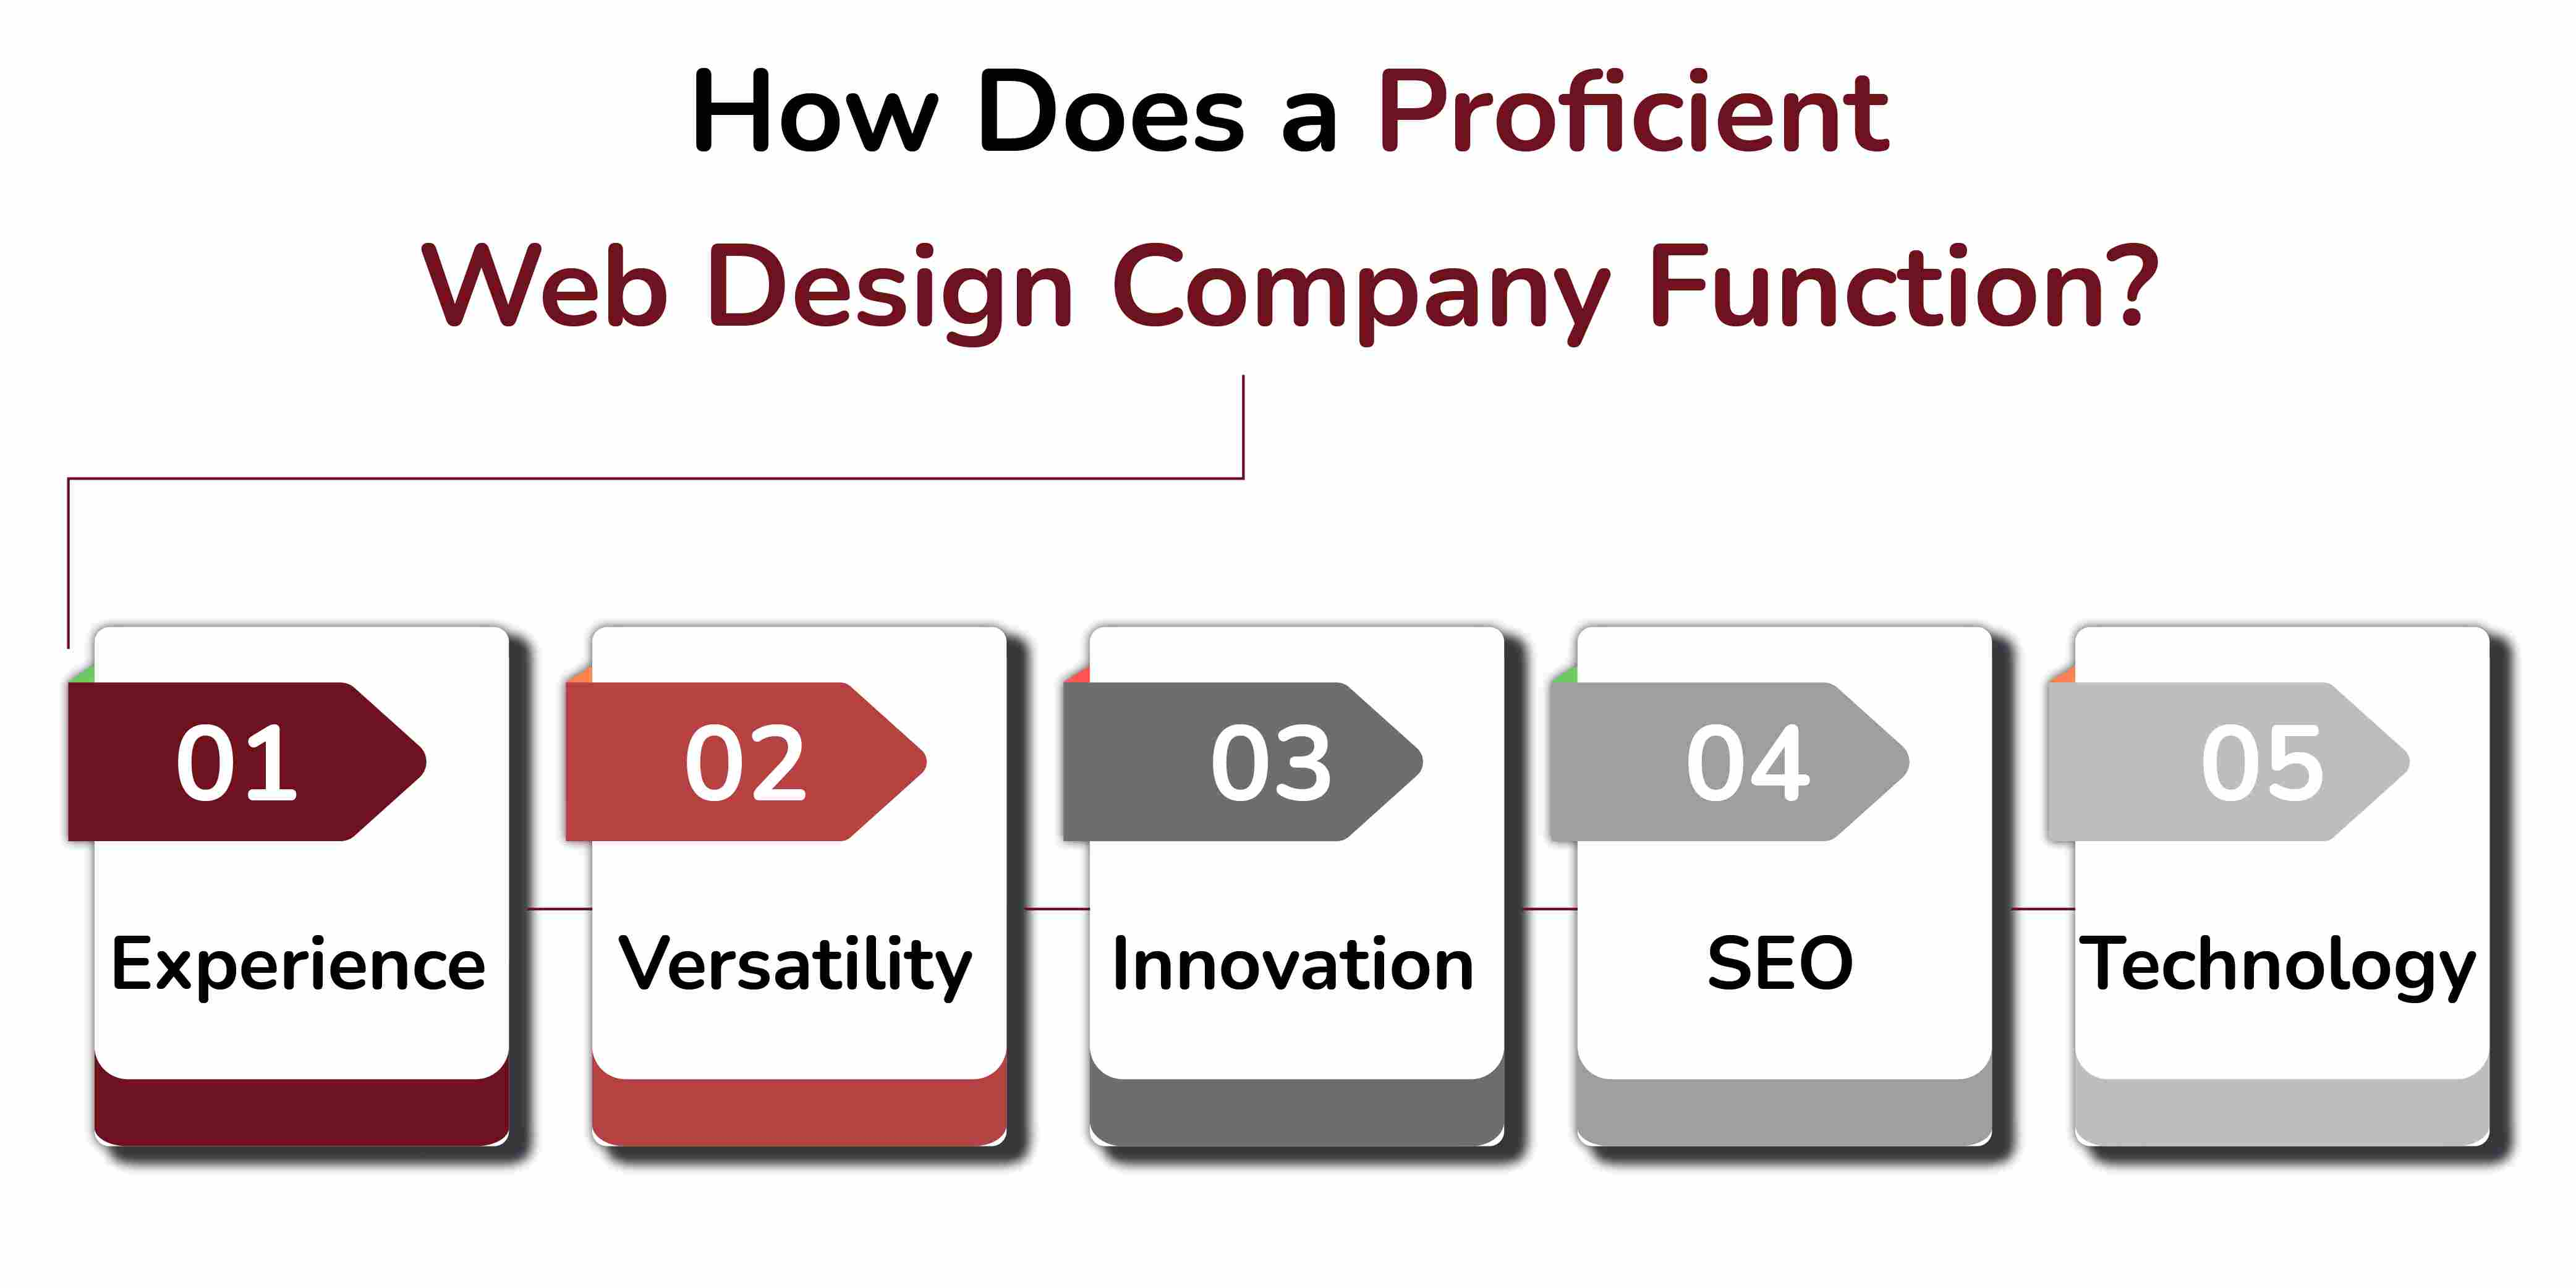 How Does a Proficient Web Design Company Function